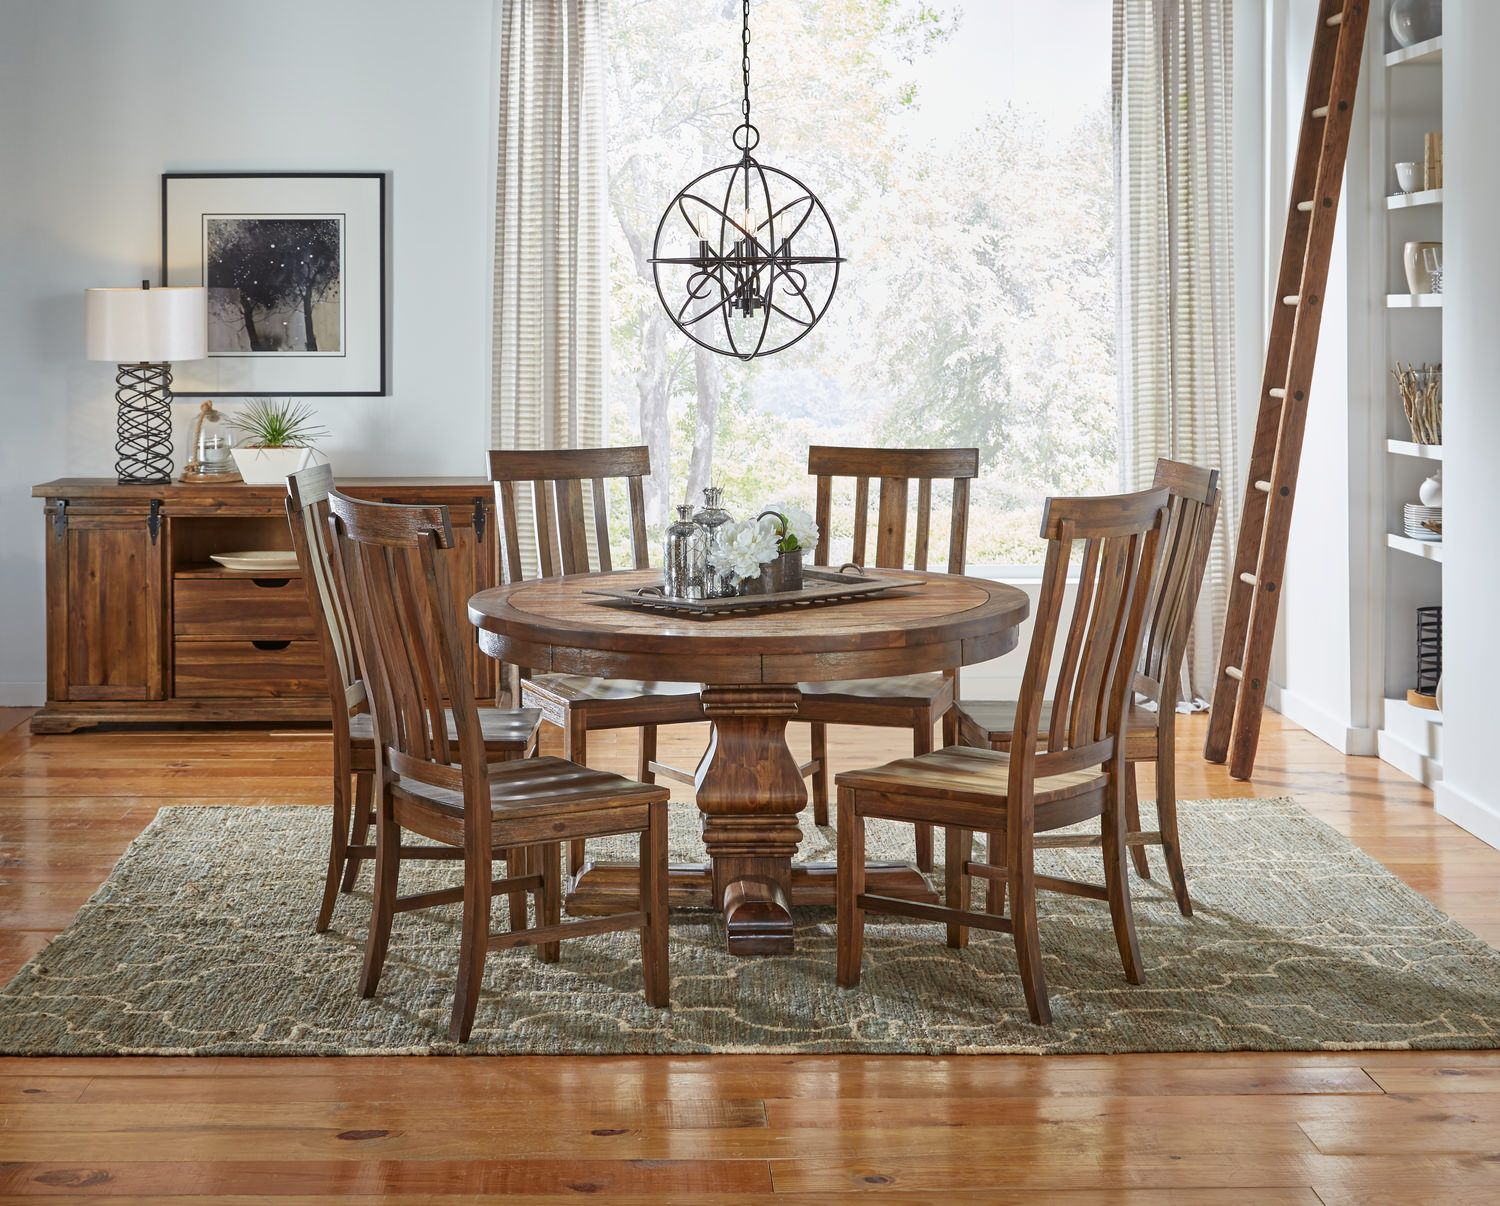 Dawson 54 Round Table and 4 dining chairs | 4 dining ...